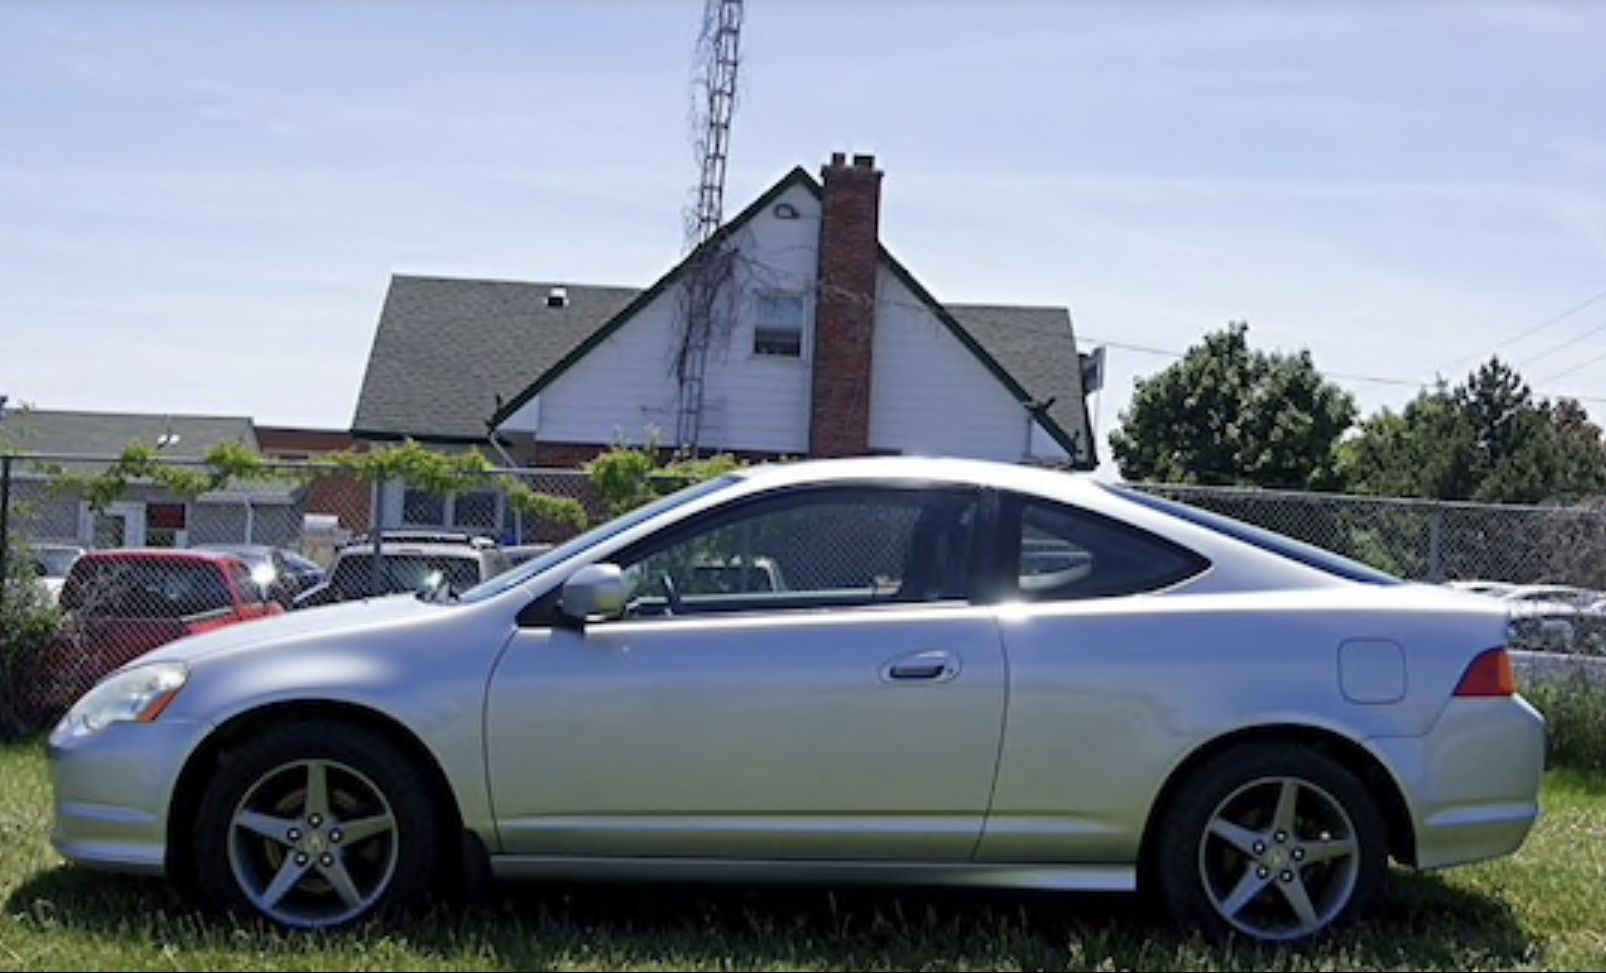 ACURA RSX TYPES TYPE S SPEED LEATHER SUNROOF - Acura rsx sunroof